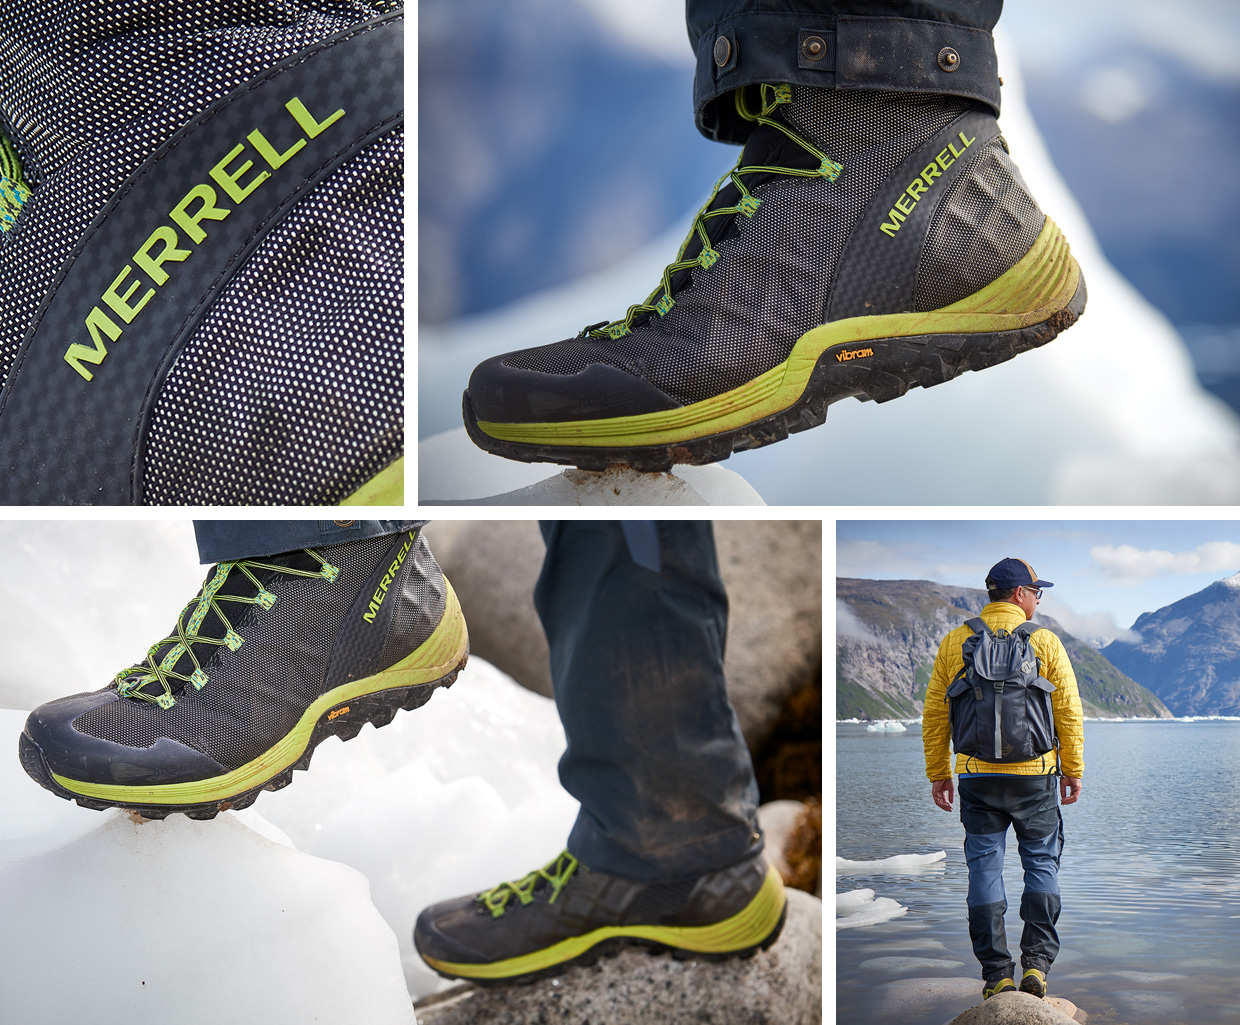 9ee15a68c21 Review: Merrell Thermo Rogue Gore-Tex Boots - Sidetracked